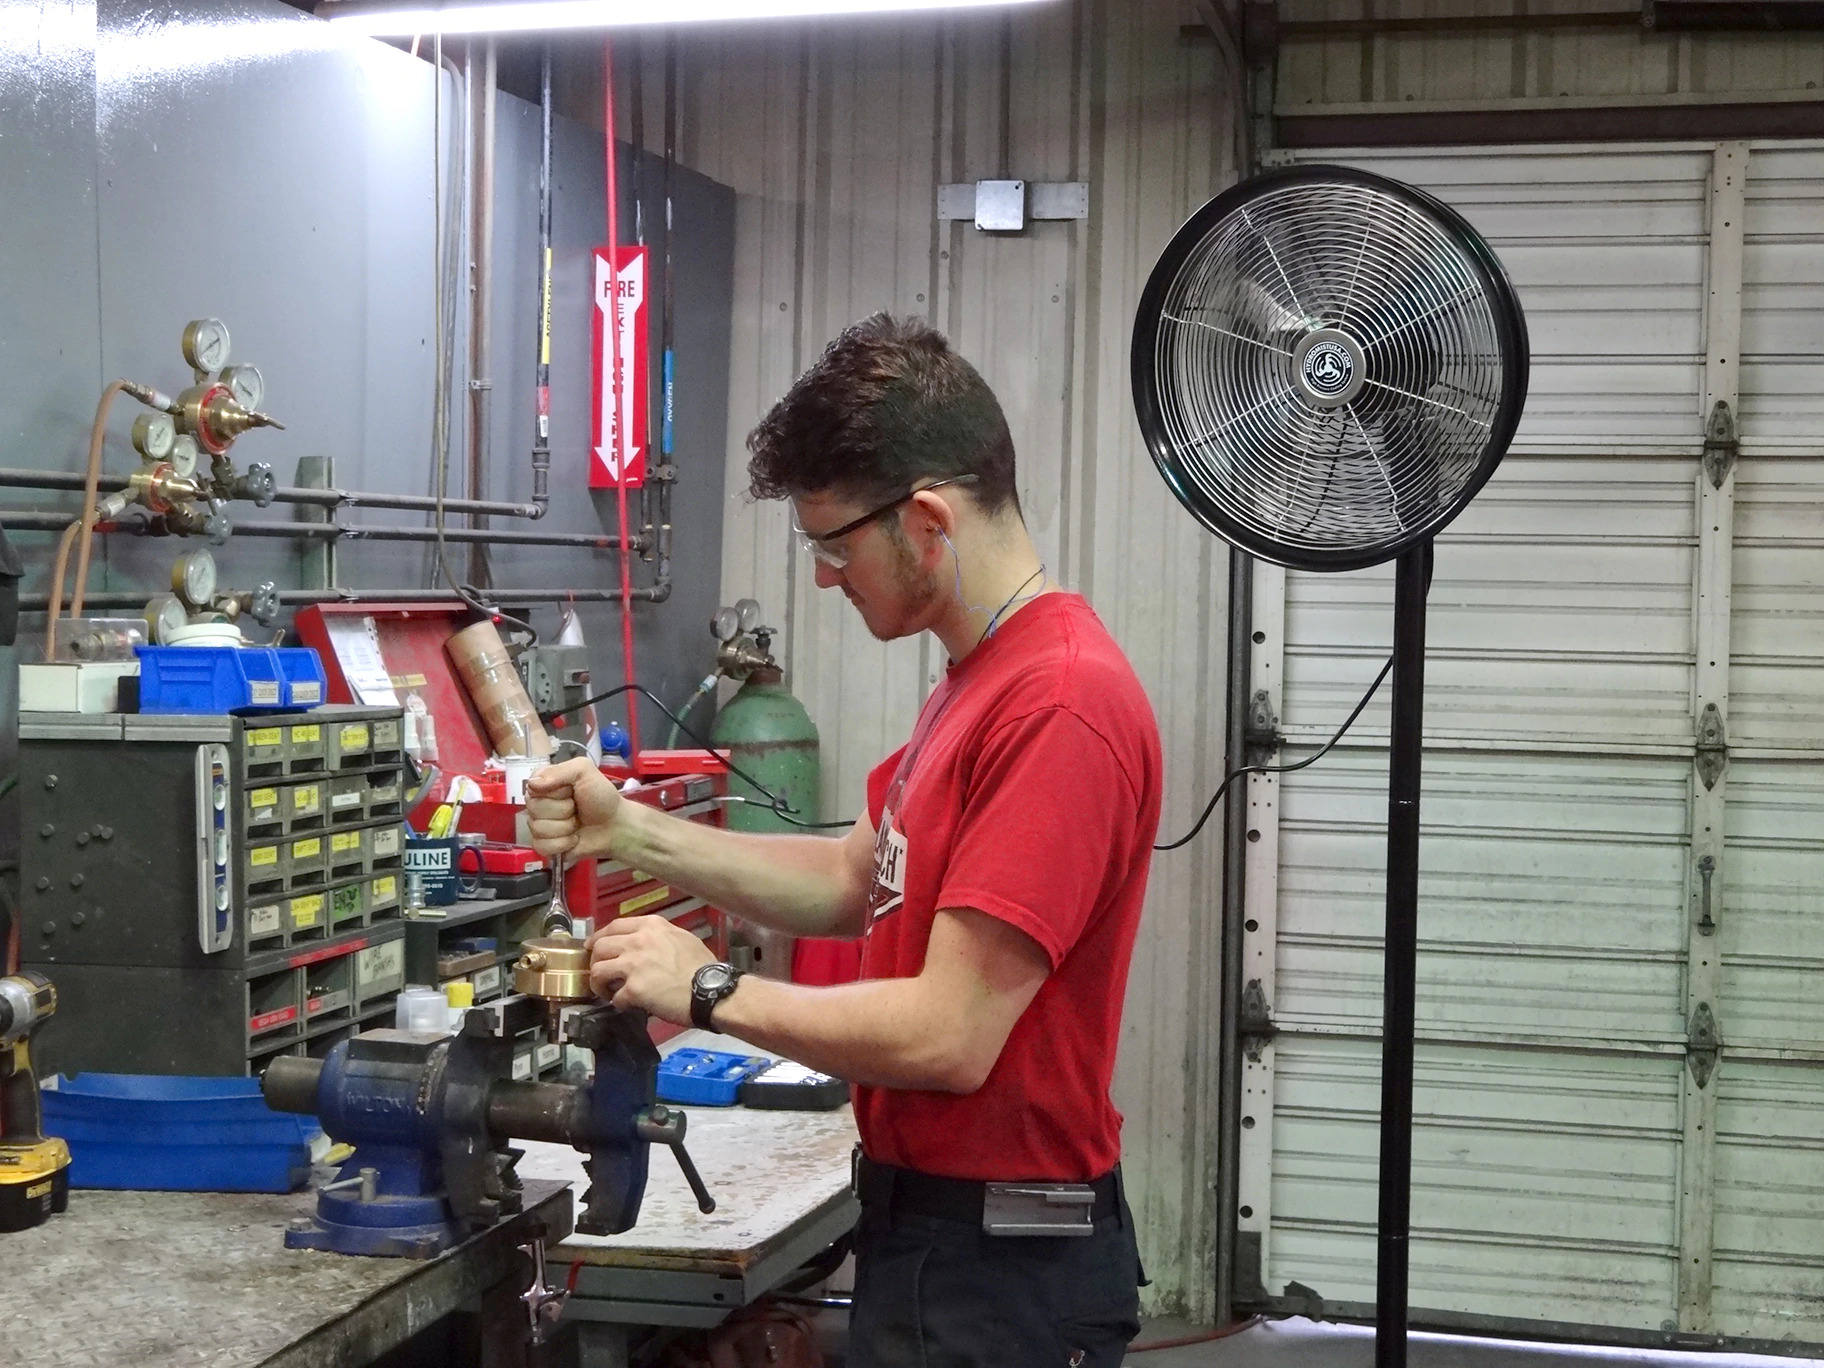 Worker wearing red t-shirt and black work pants working in his workshoup under 18 Inch Shrouded Ocscillating Outdoor Indoor Fan-3 Speeds